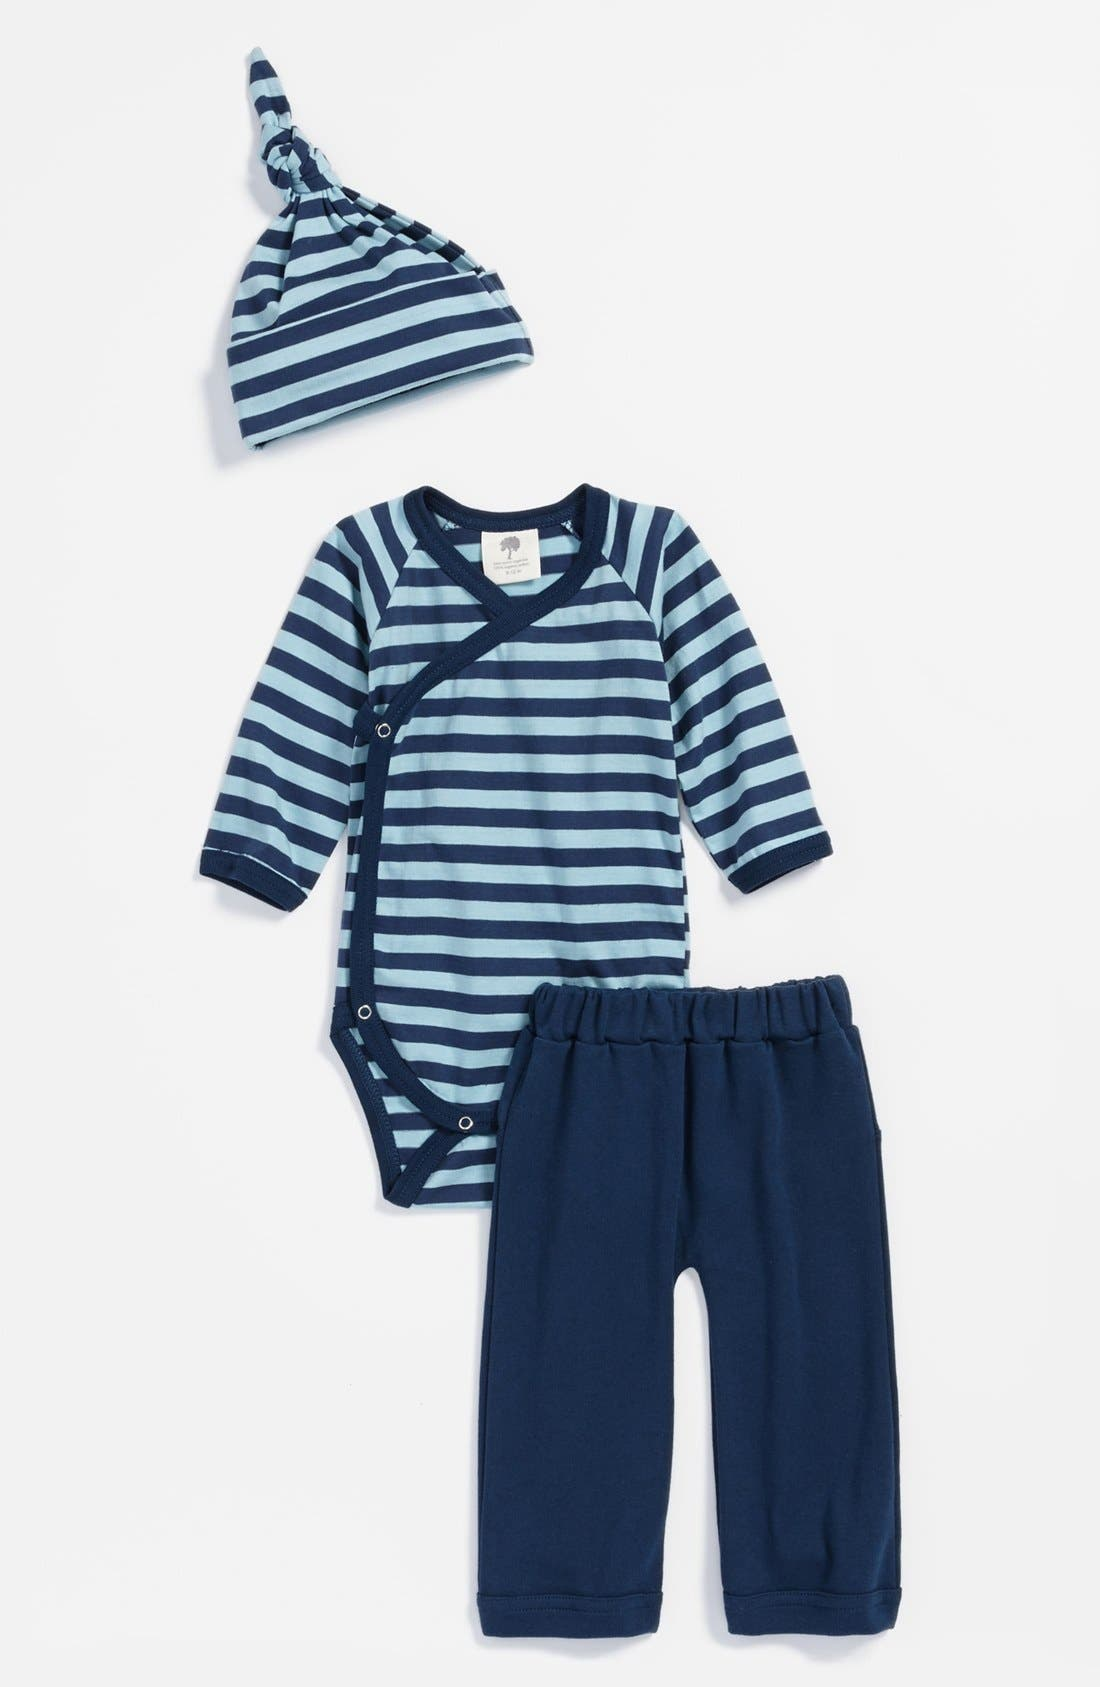 Main Image - Kate Quinn Organics 'Play' Bodysuit, Pants & Hat Set (Baby Boys)